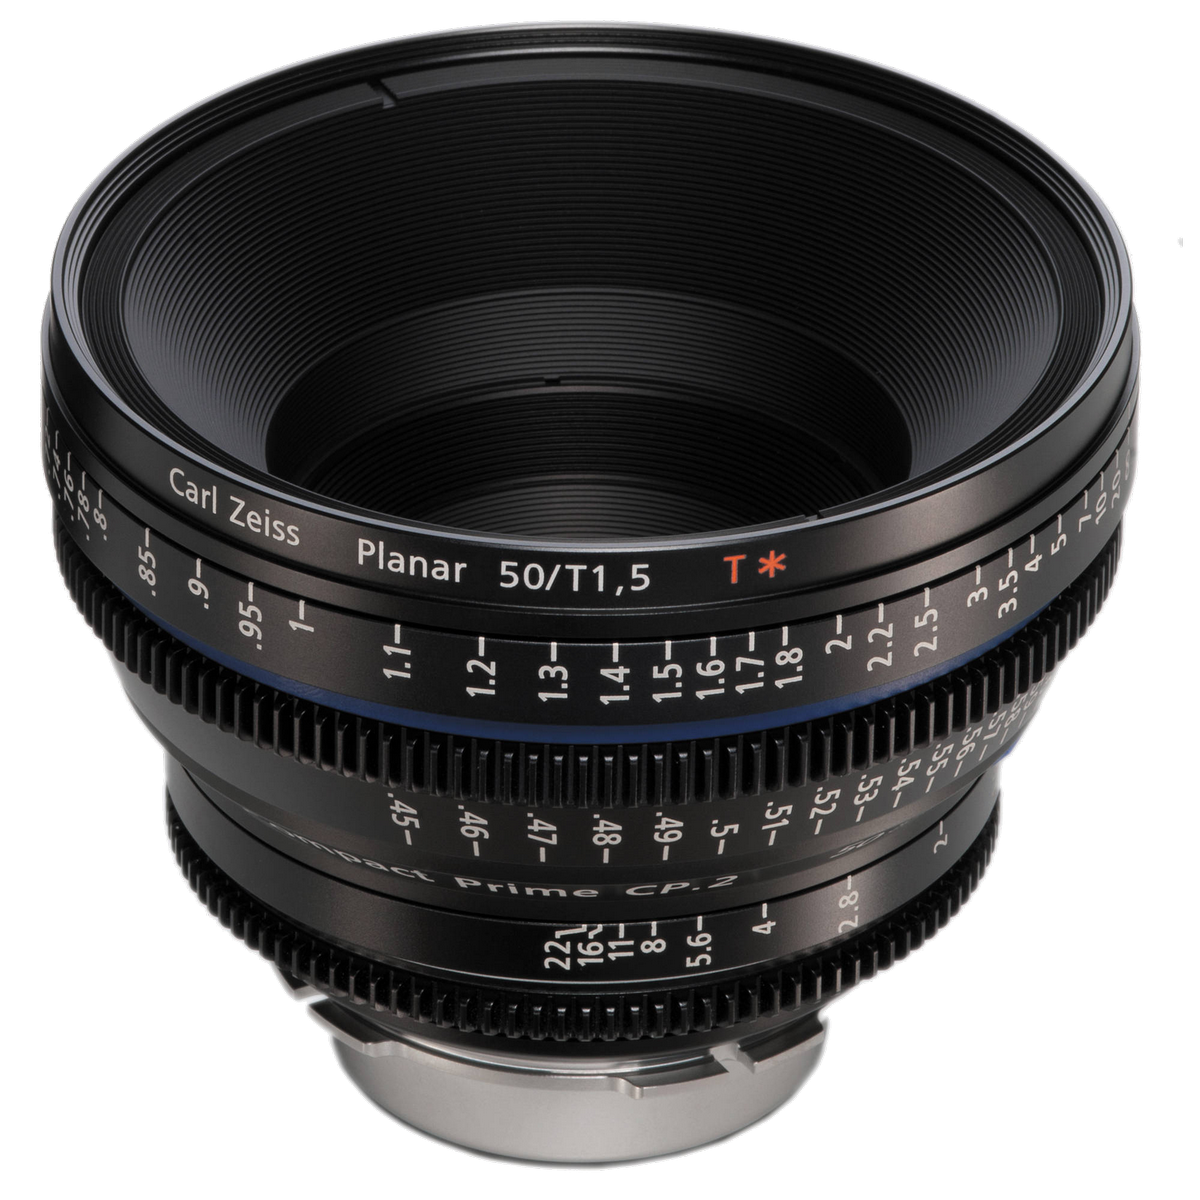 картинка Carl Zeiss Super Speed CP.2 50/T1.5 (EF/PL) от магазина Rental+